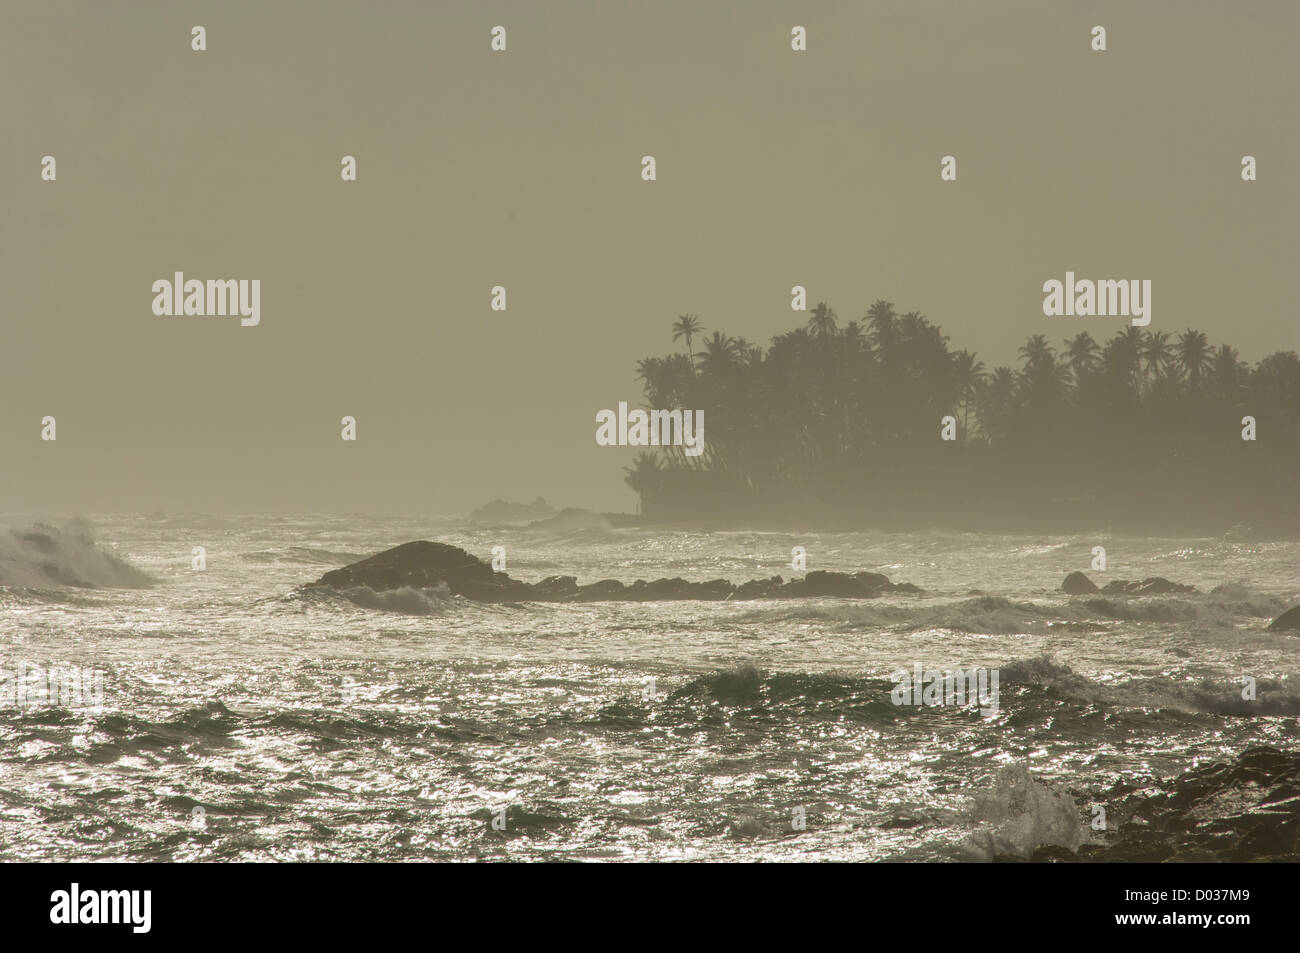 Spray over a stormy sea at sunset, Galle, Sri Lanka Stock Photo